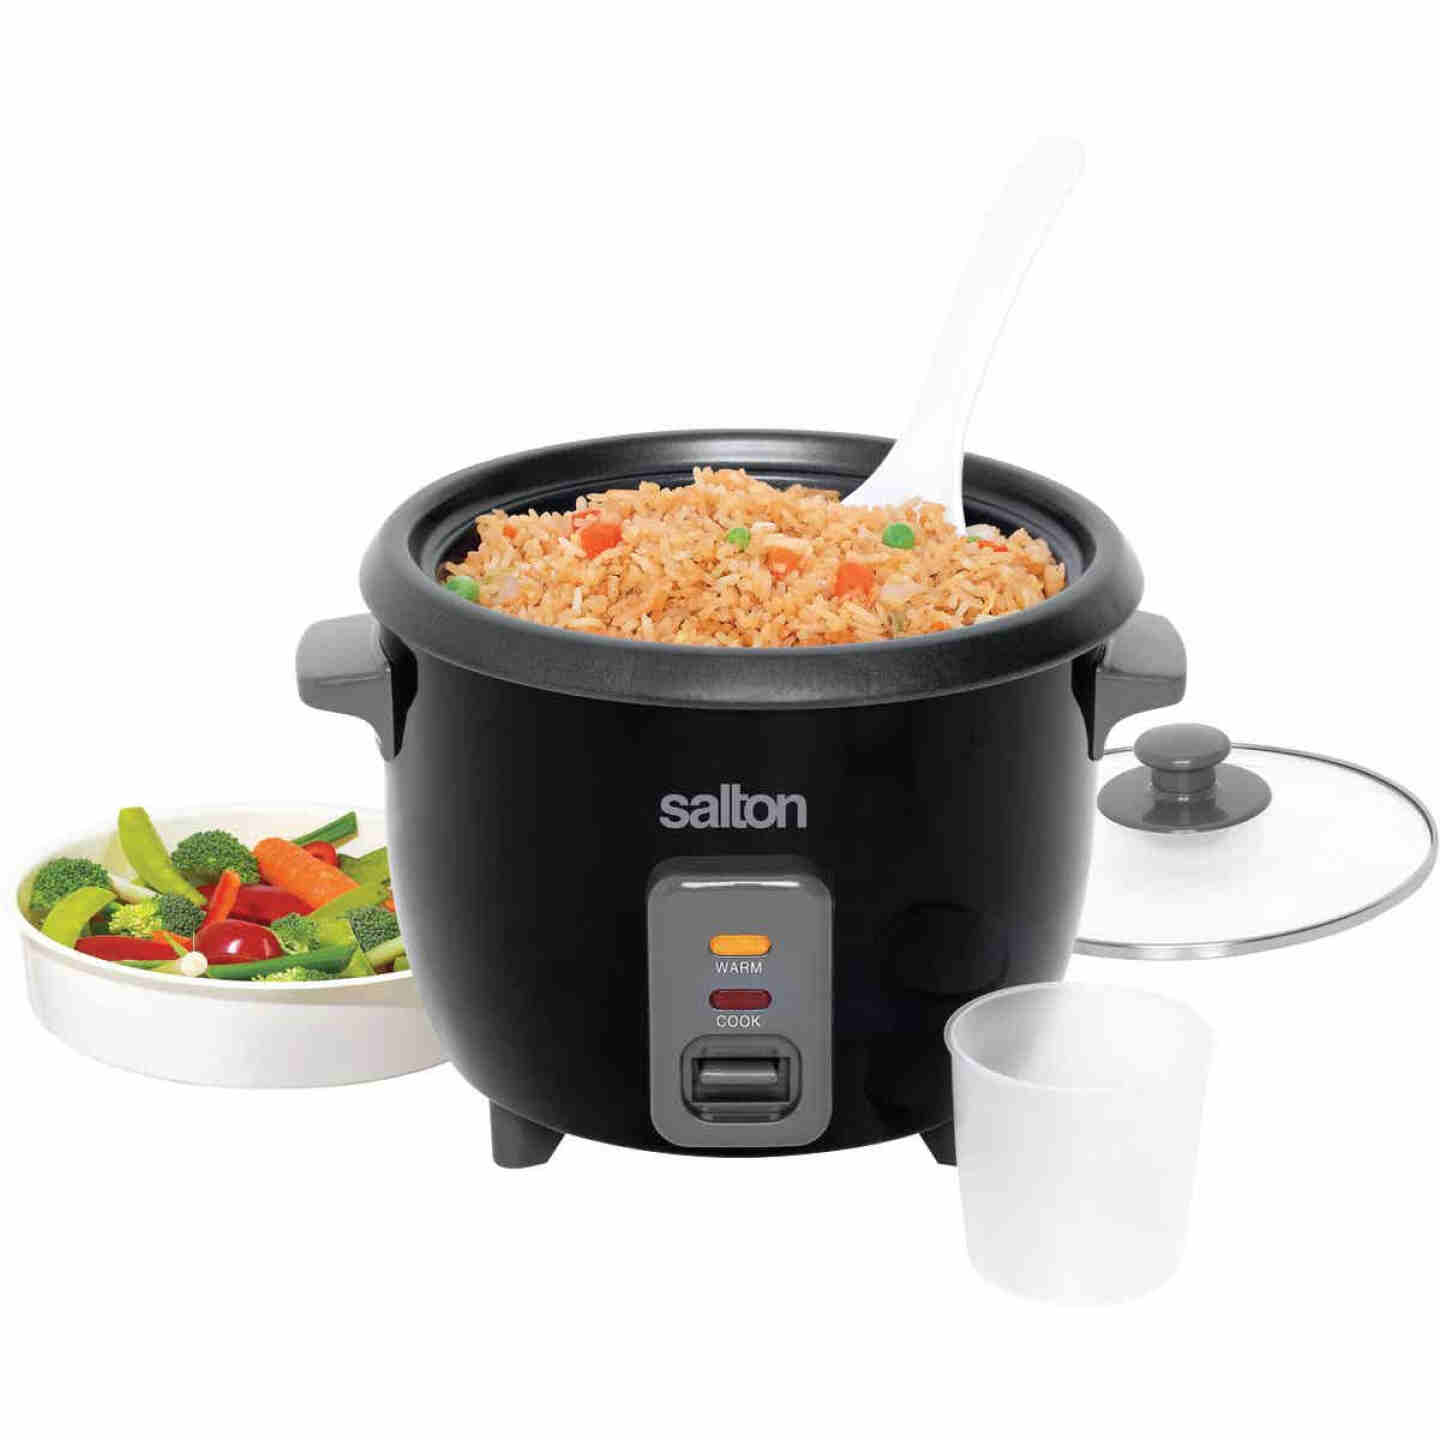 Salton 6-Cup Automatic Rice Cooker Image 4